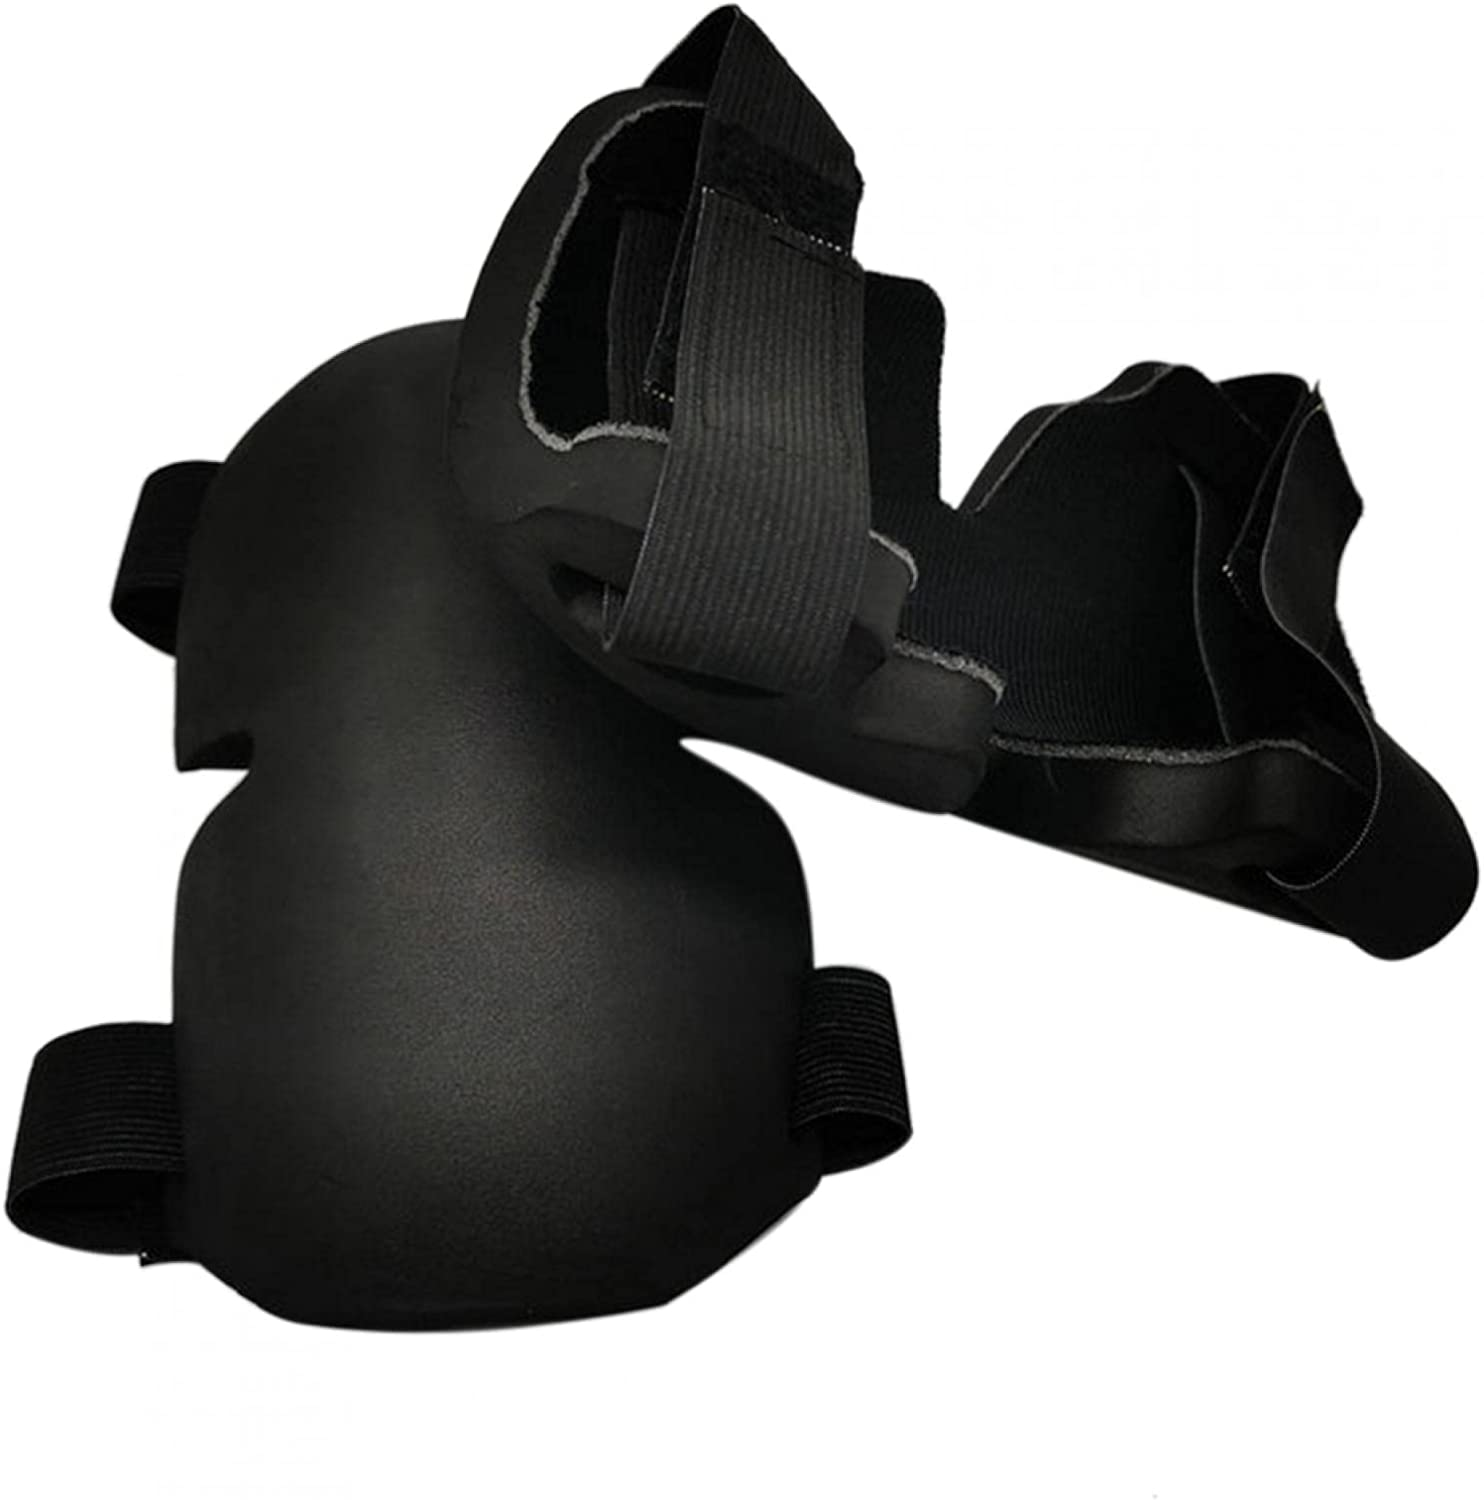 Knee Pads for Work EVA Direct store Super-cheap Professional Lab Gardening